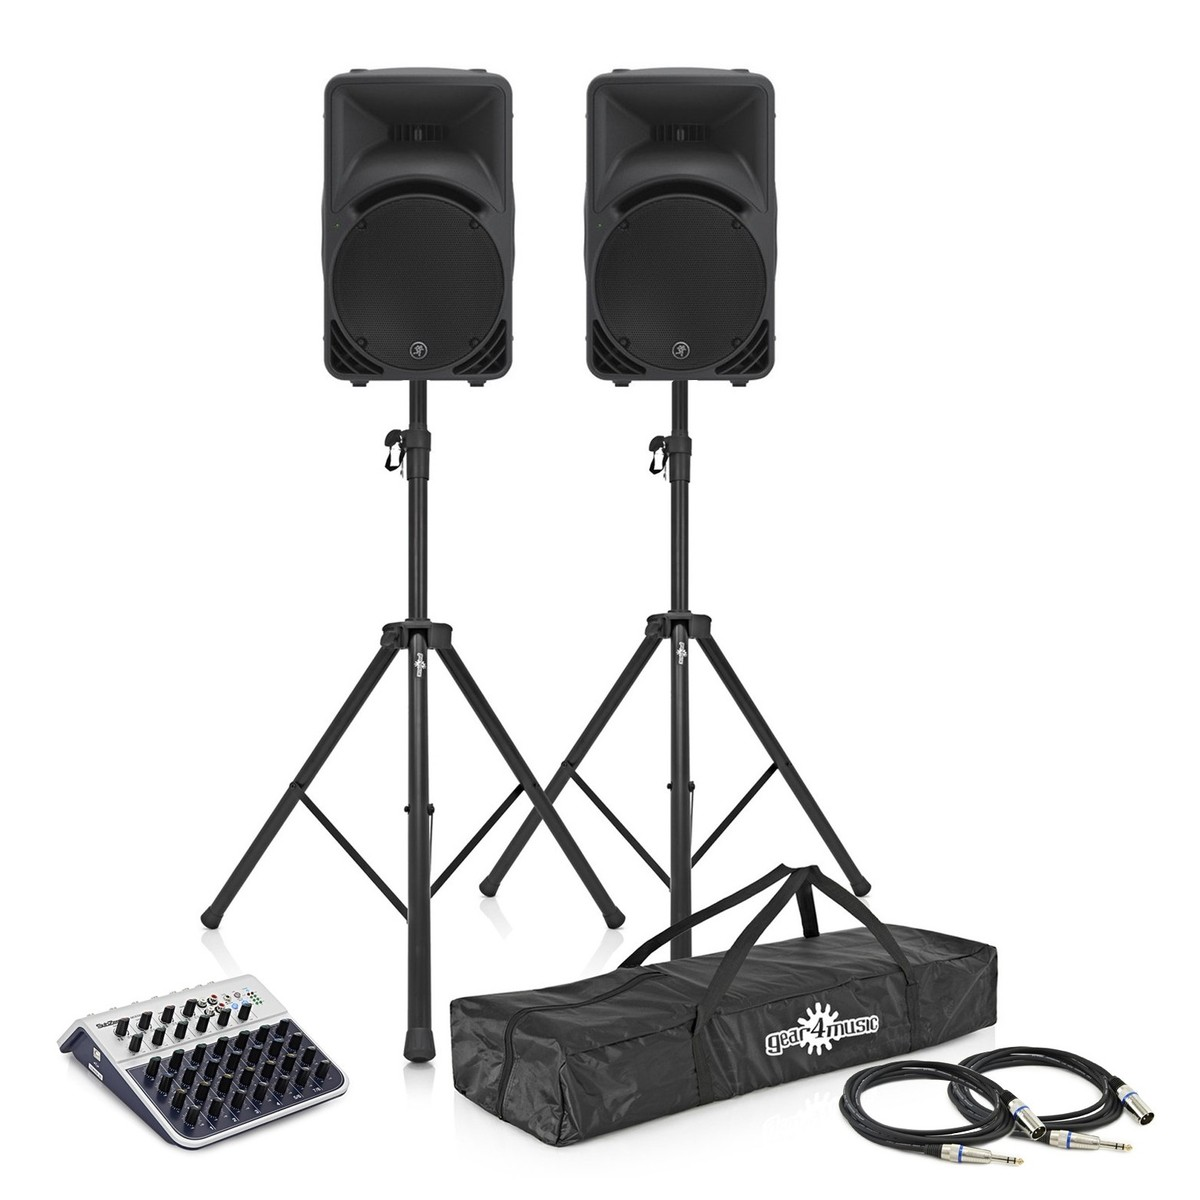 Mackie Srm450 V3 Pa System With Mixer Stands Cables At Gear4music Speaker Wiring Loading Examples